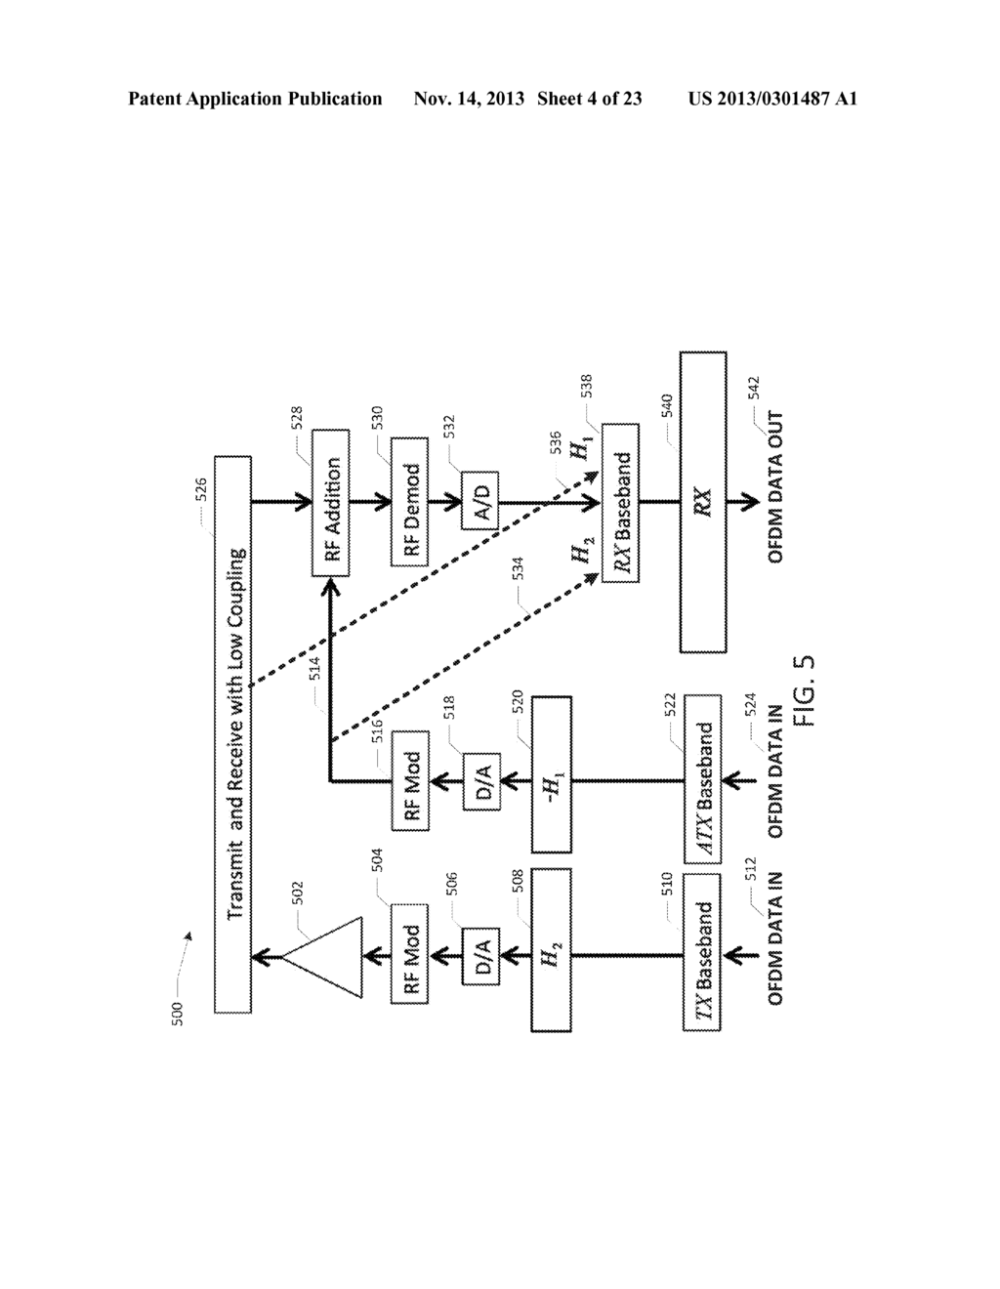 medium resolution of full duplex wireless transmission with self interference cancellation diagram schematic and image 05